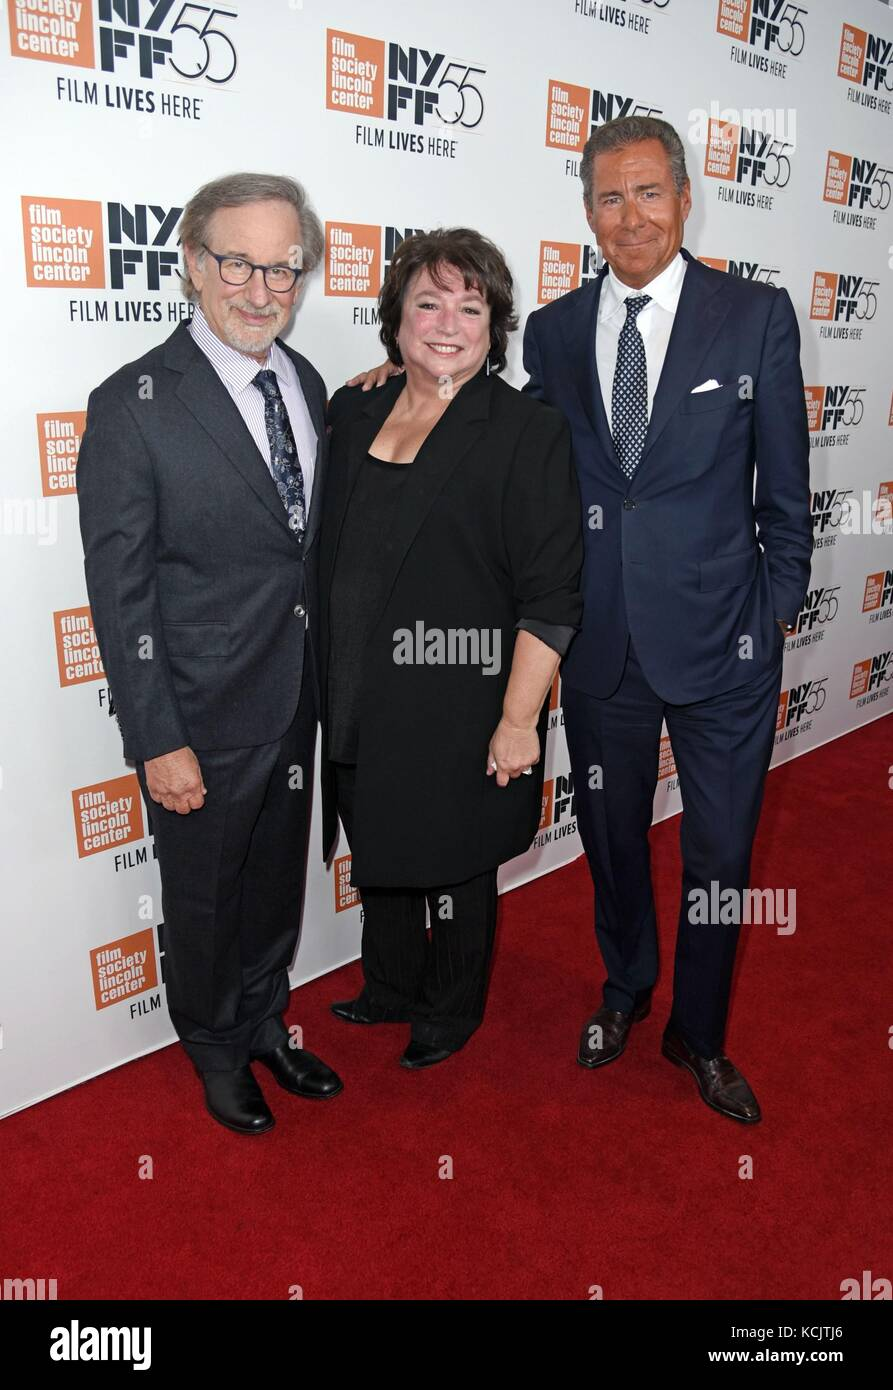 New York, NY, USA. 5th Oct, 2017. Steven Spielberg, Susan Lacy, Richard Plepler at arrivals for SPIELBERG Premiere - Stock Image